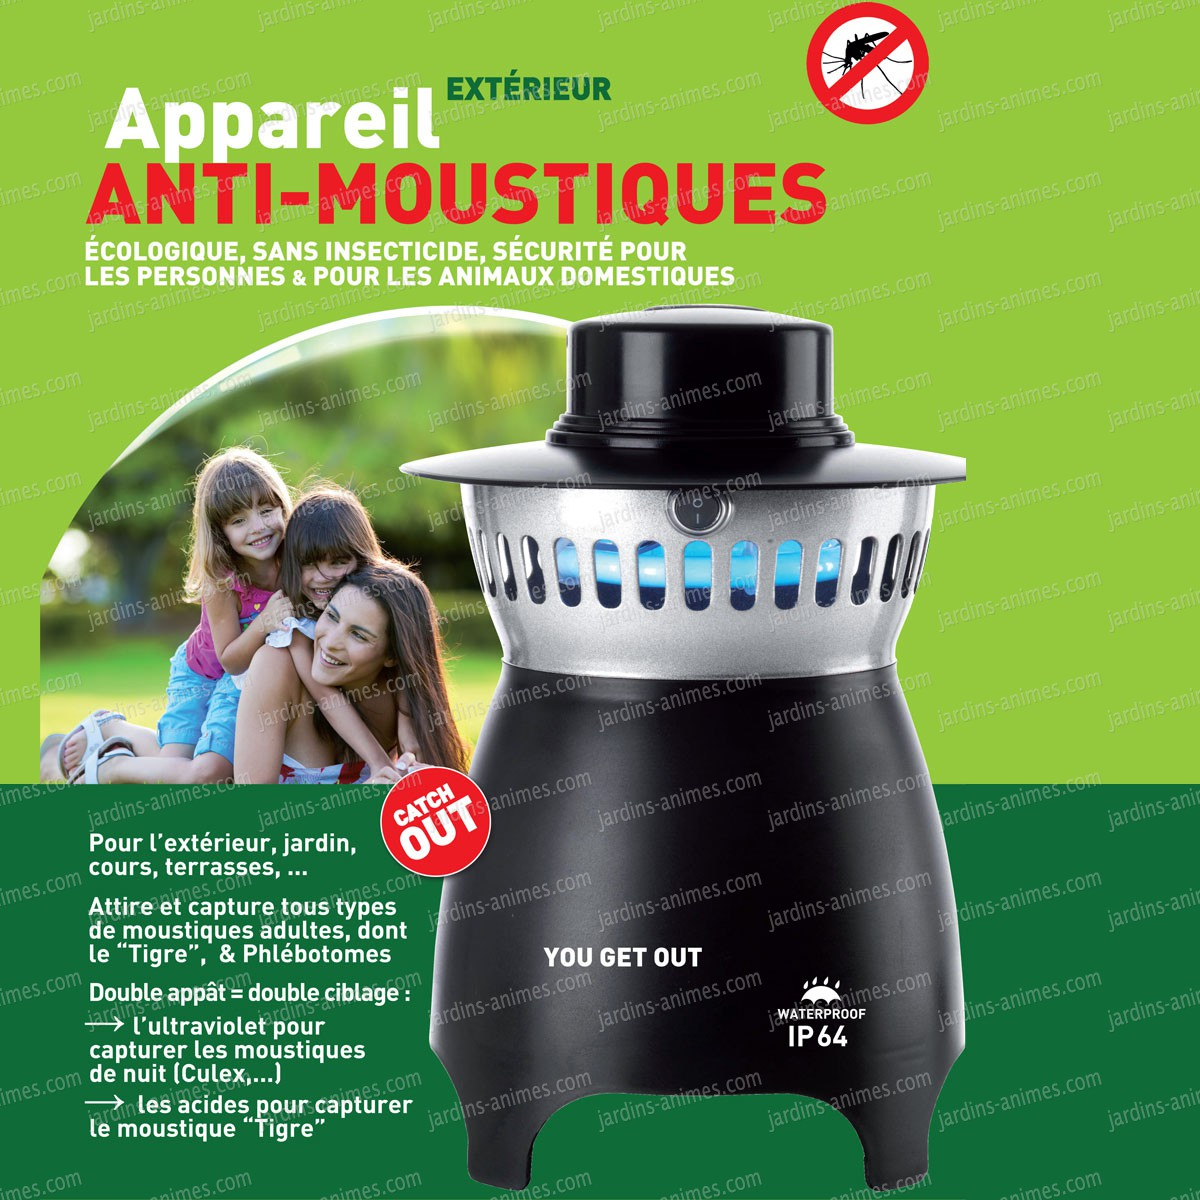 Pi ge ext rieur anti moustique you get out anti guepe et for Plante anti moustique exterieur